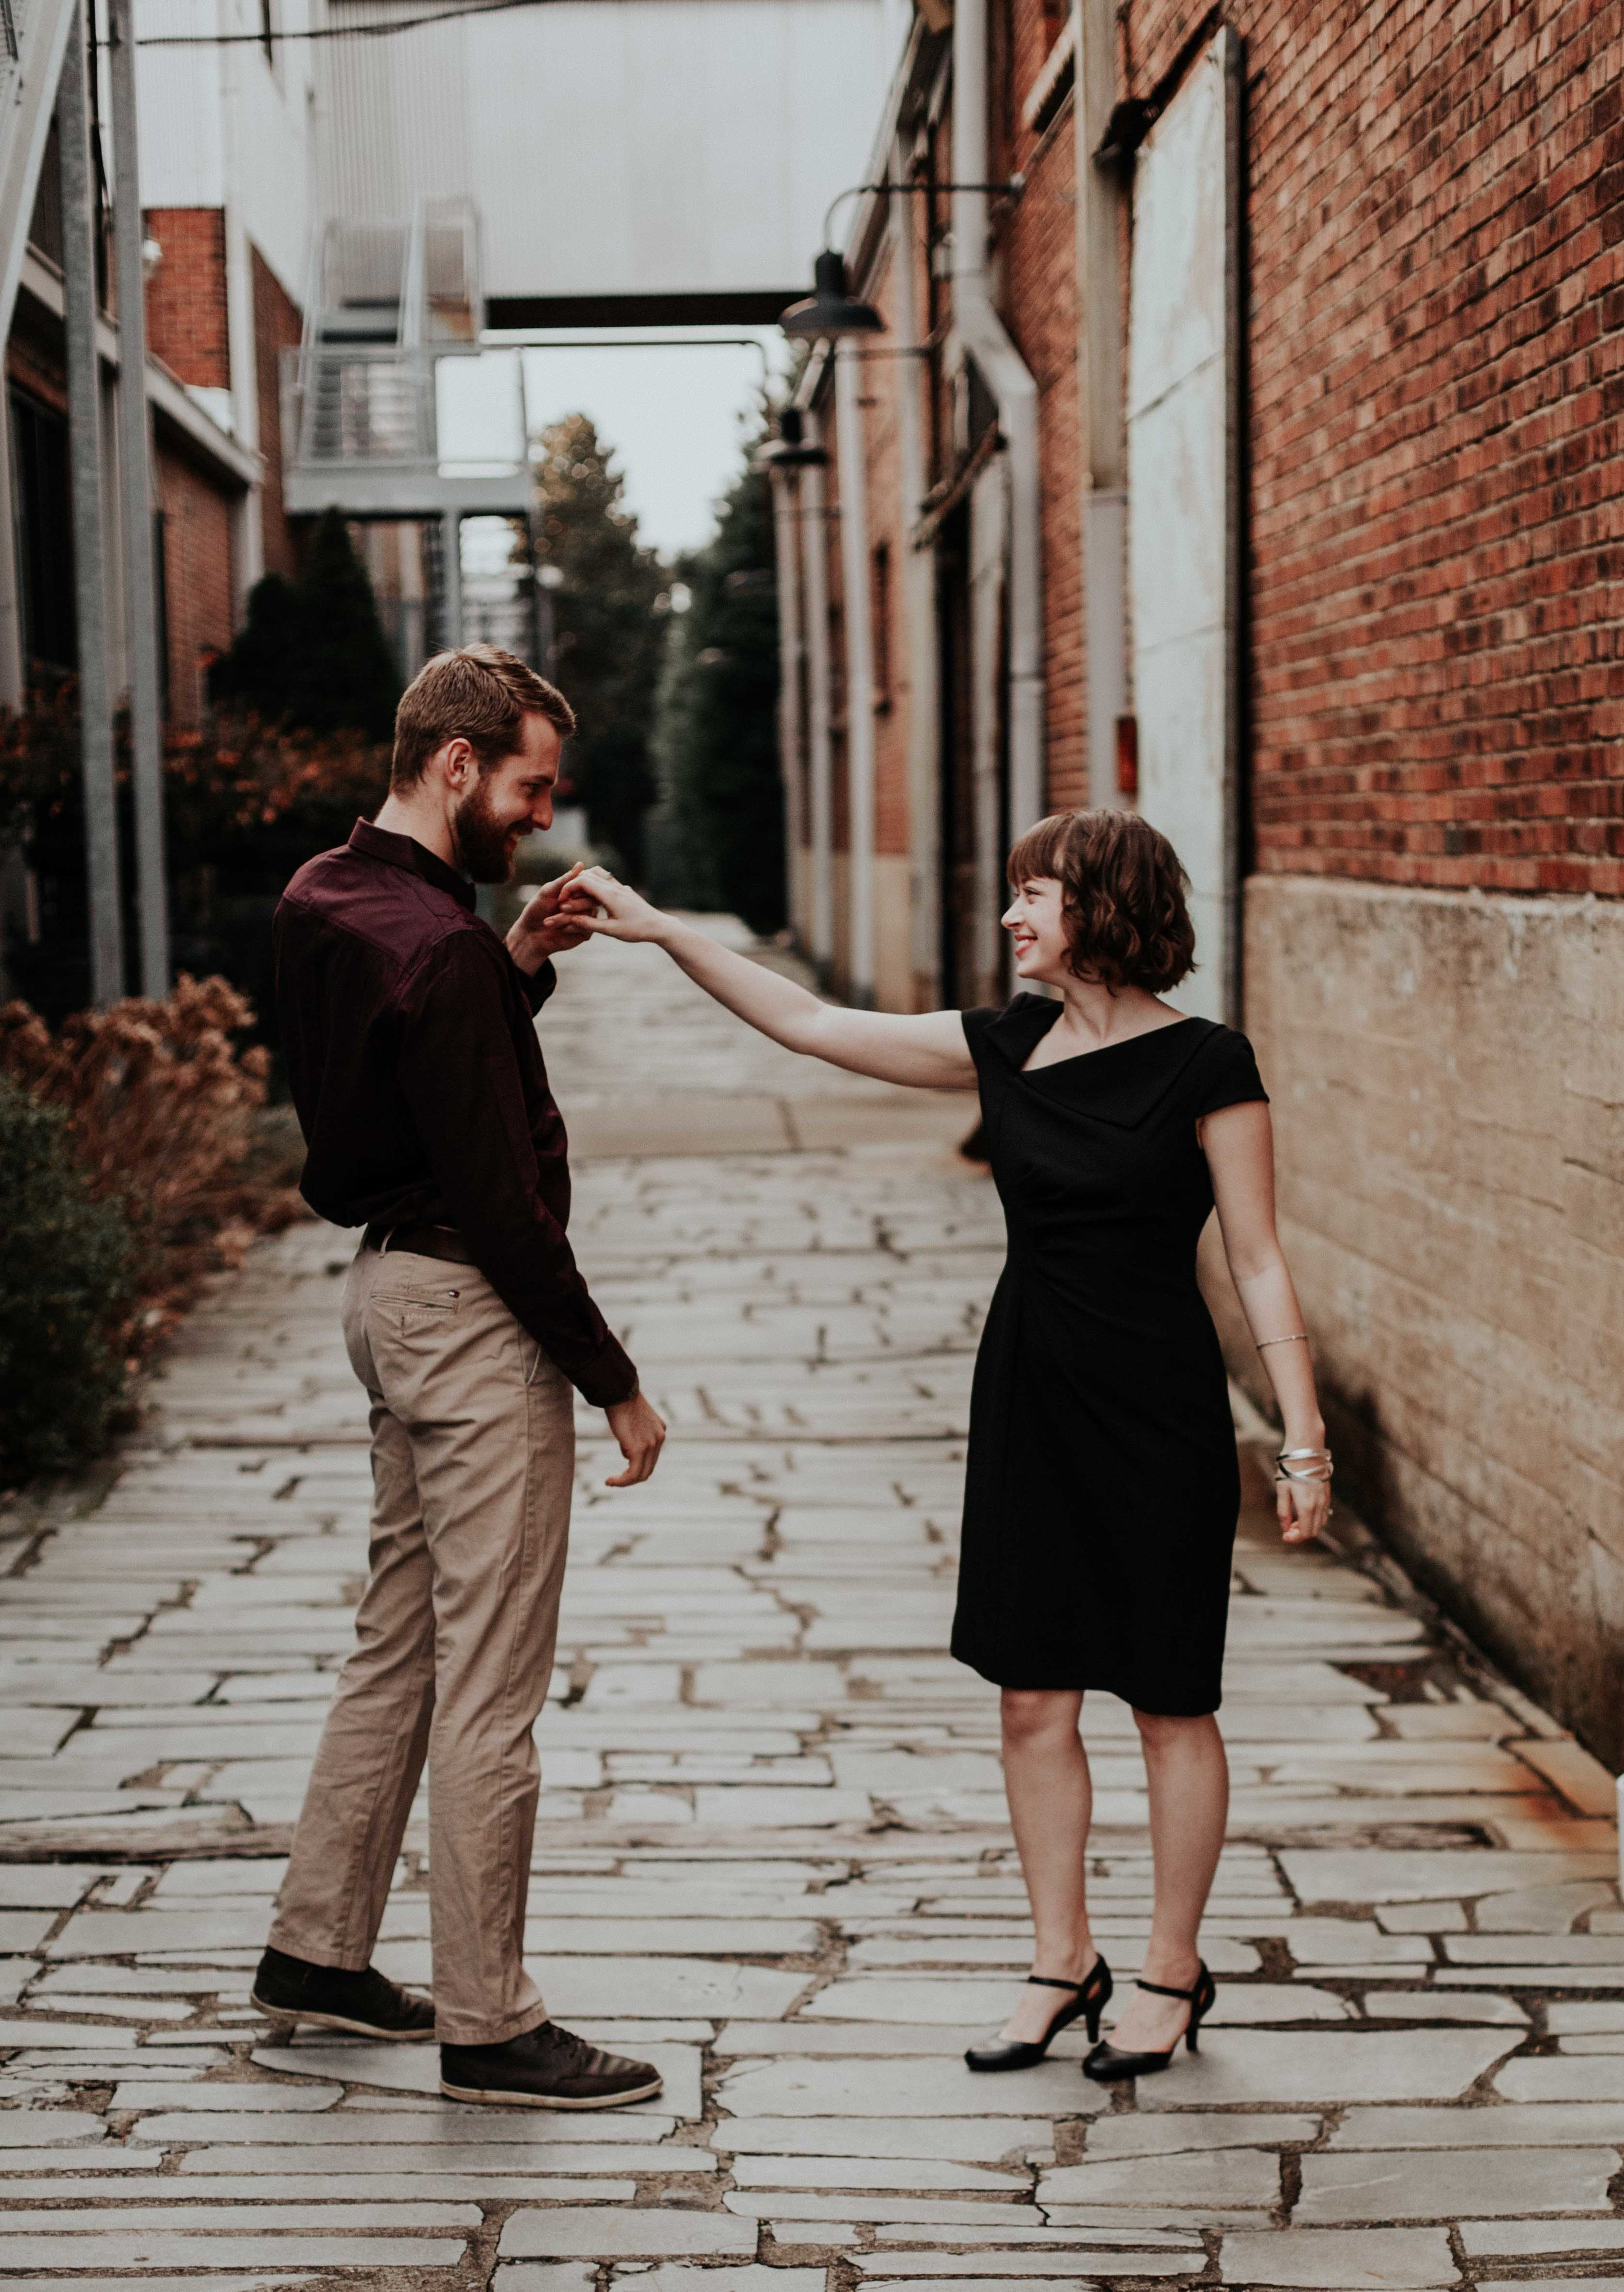 dancing posing for couples top rome italy wedding destination photographer nashville tn emily anne photography